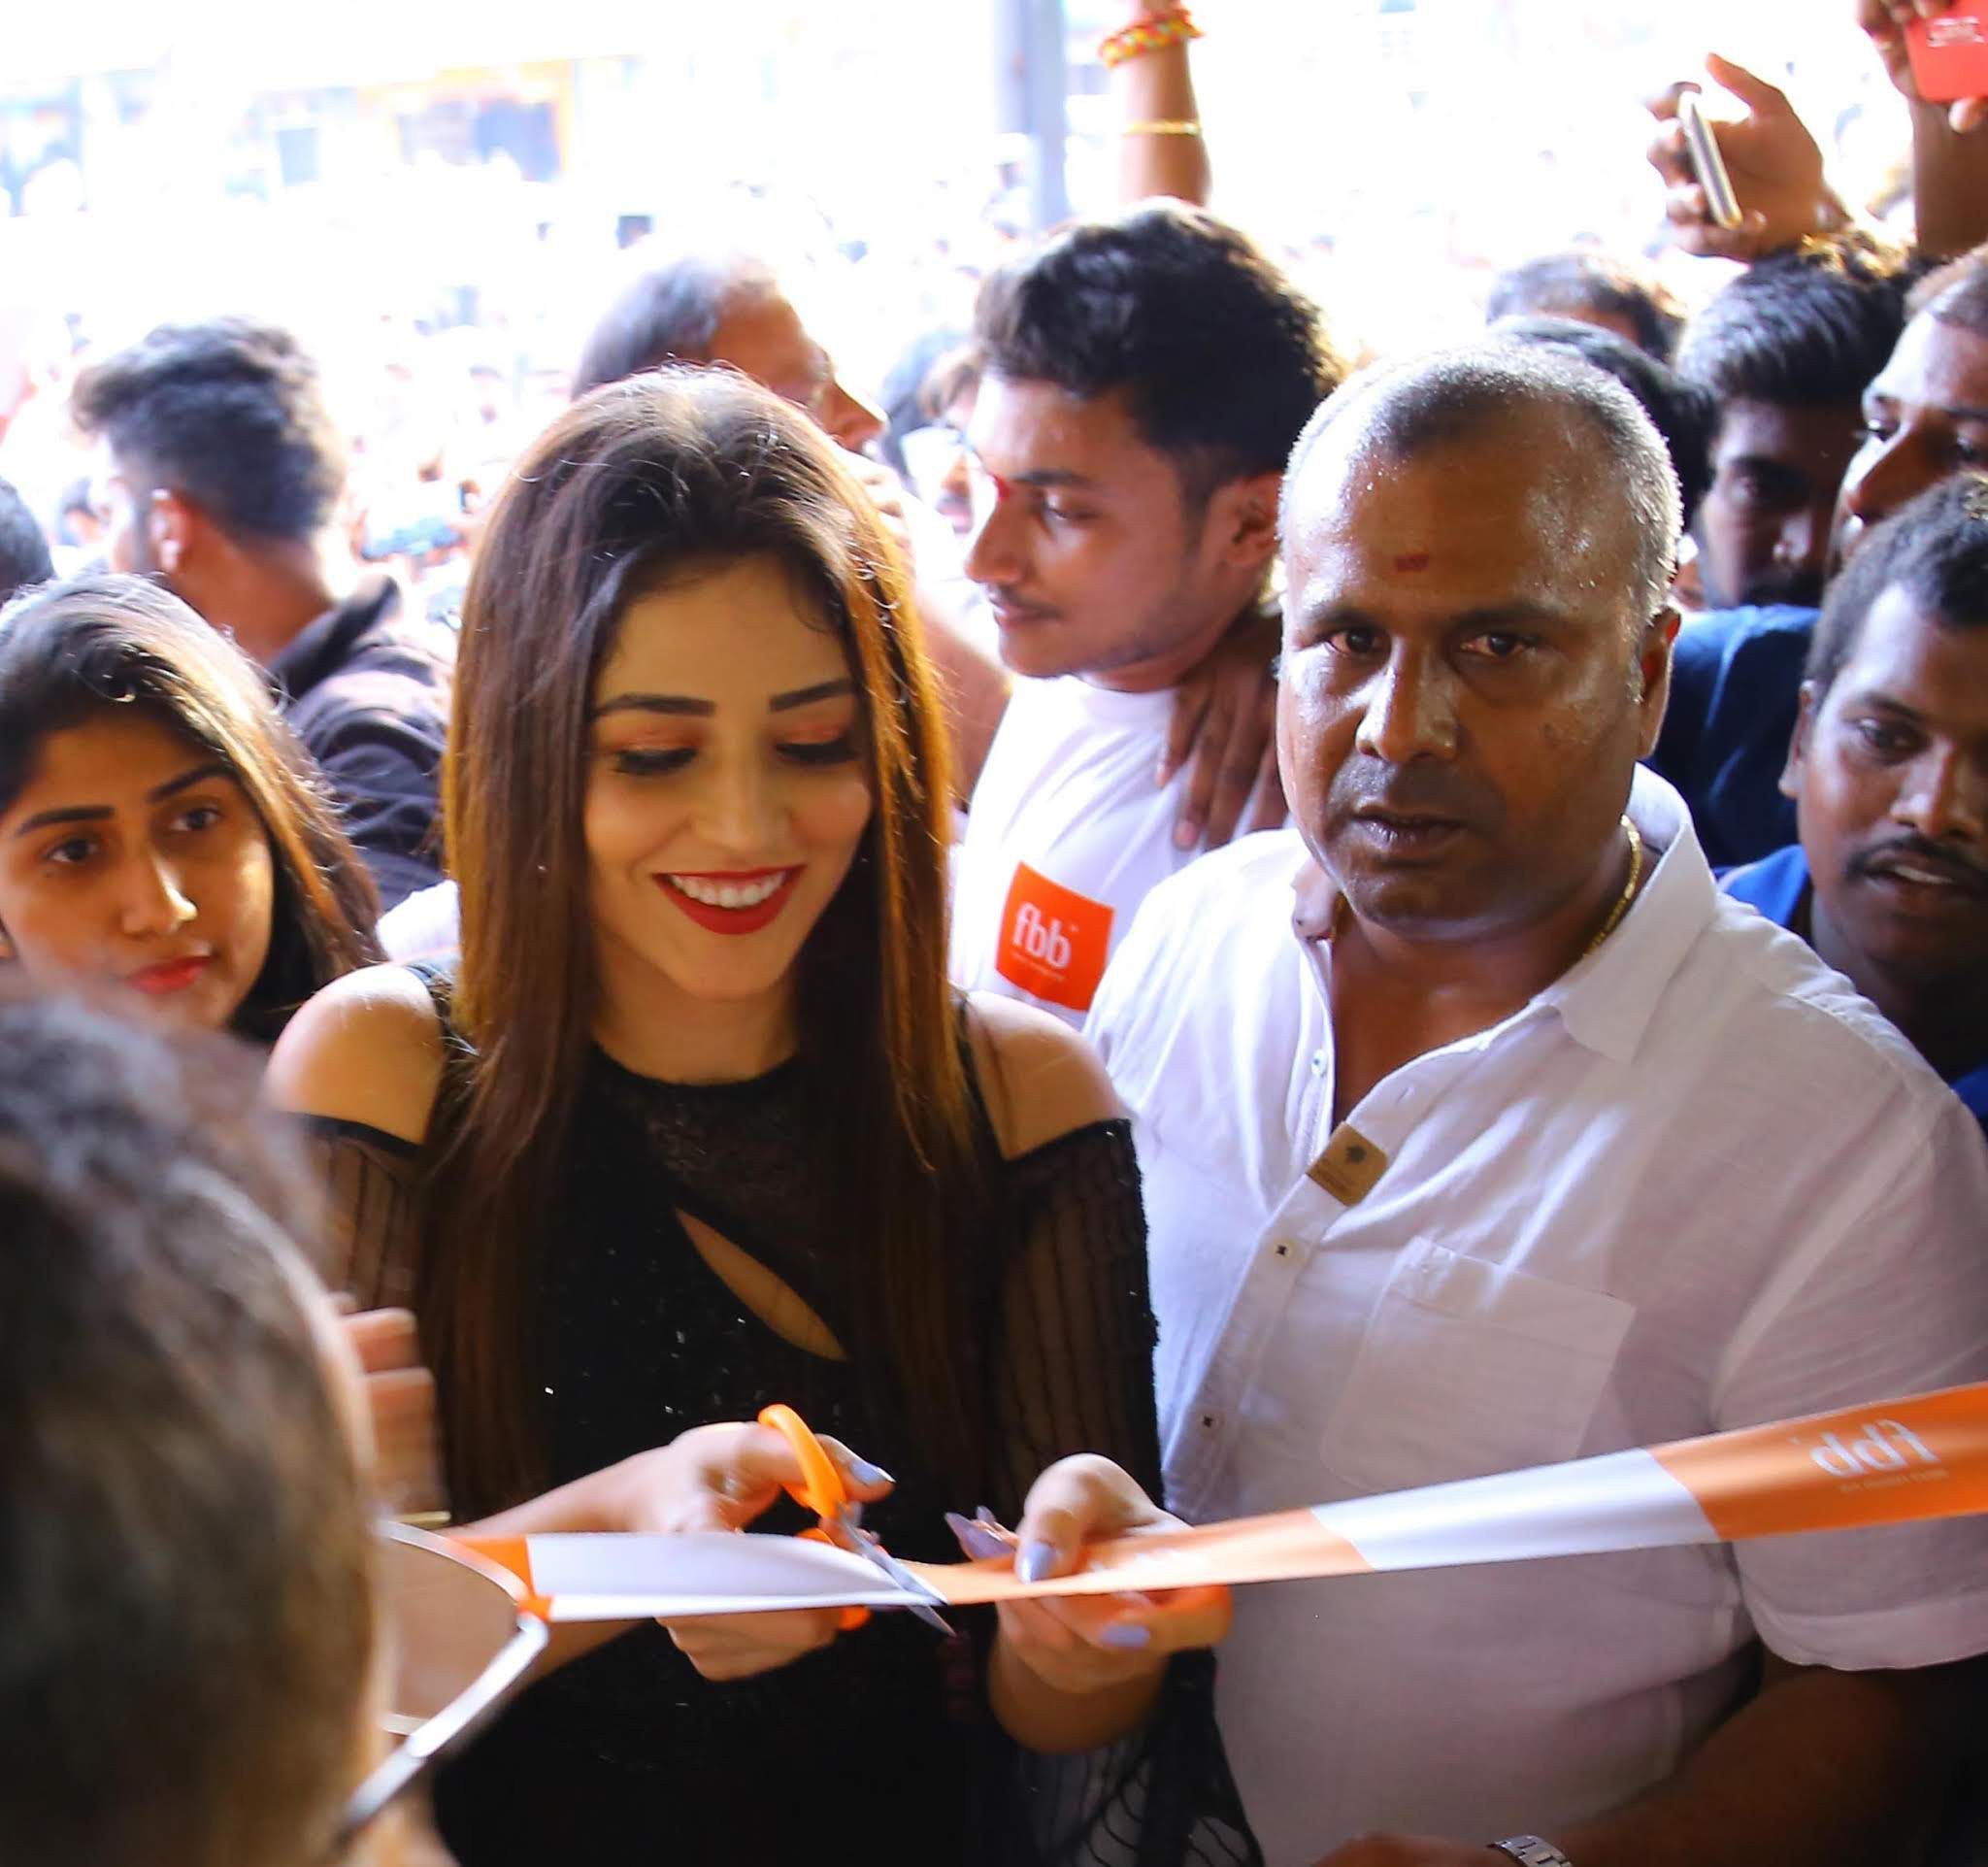 fbb's first store in Warangal launched by popular actress Priyanka Jawalkar